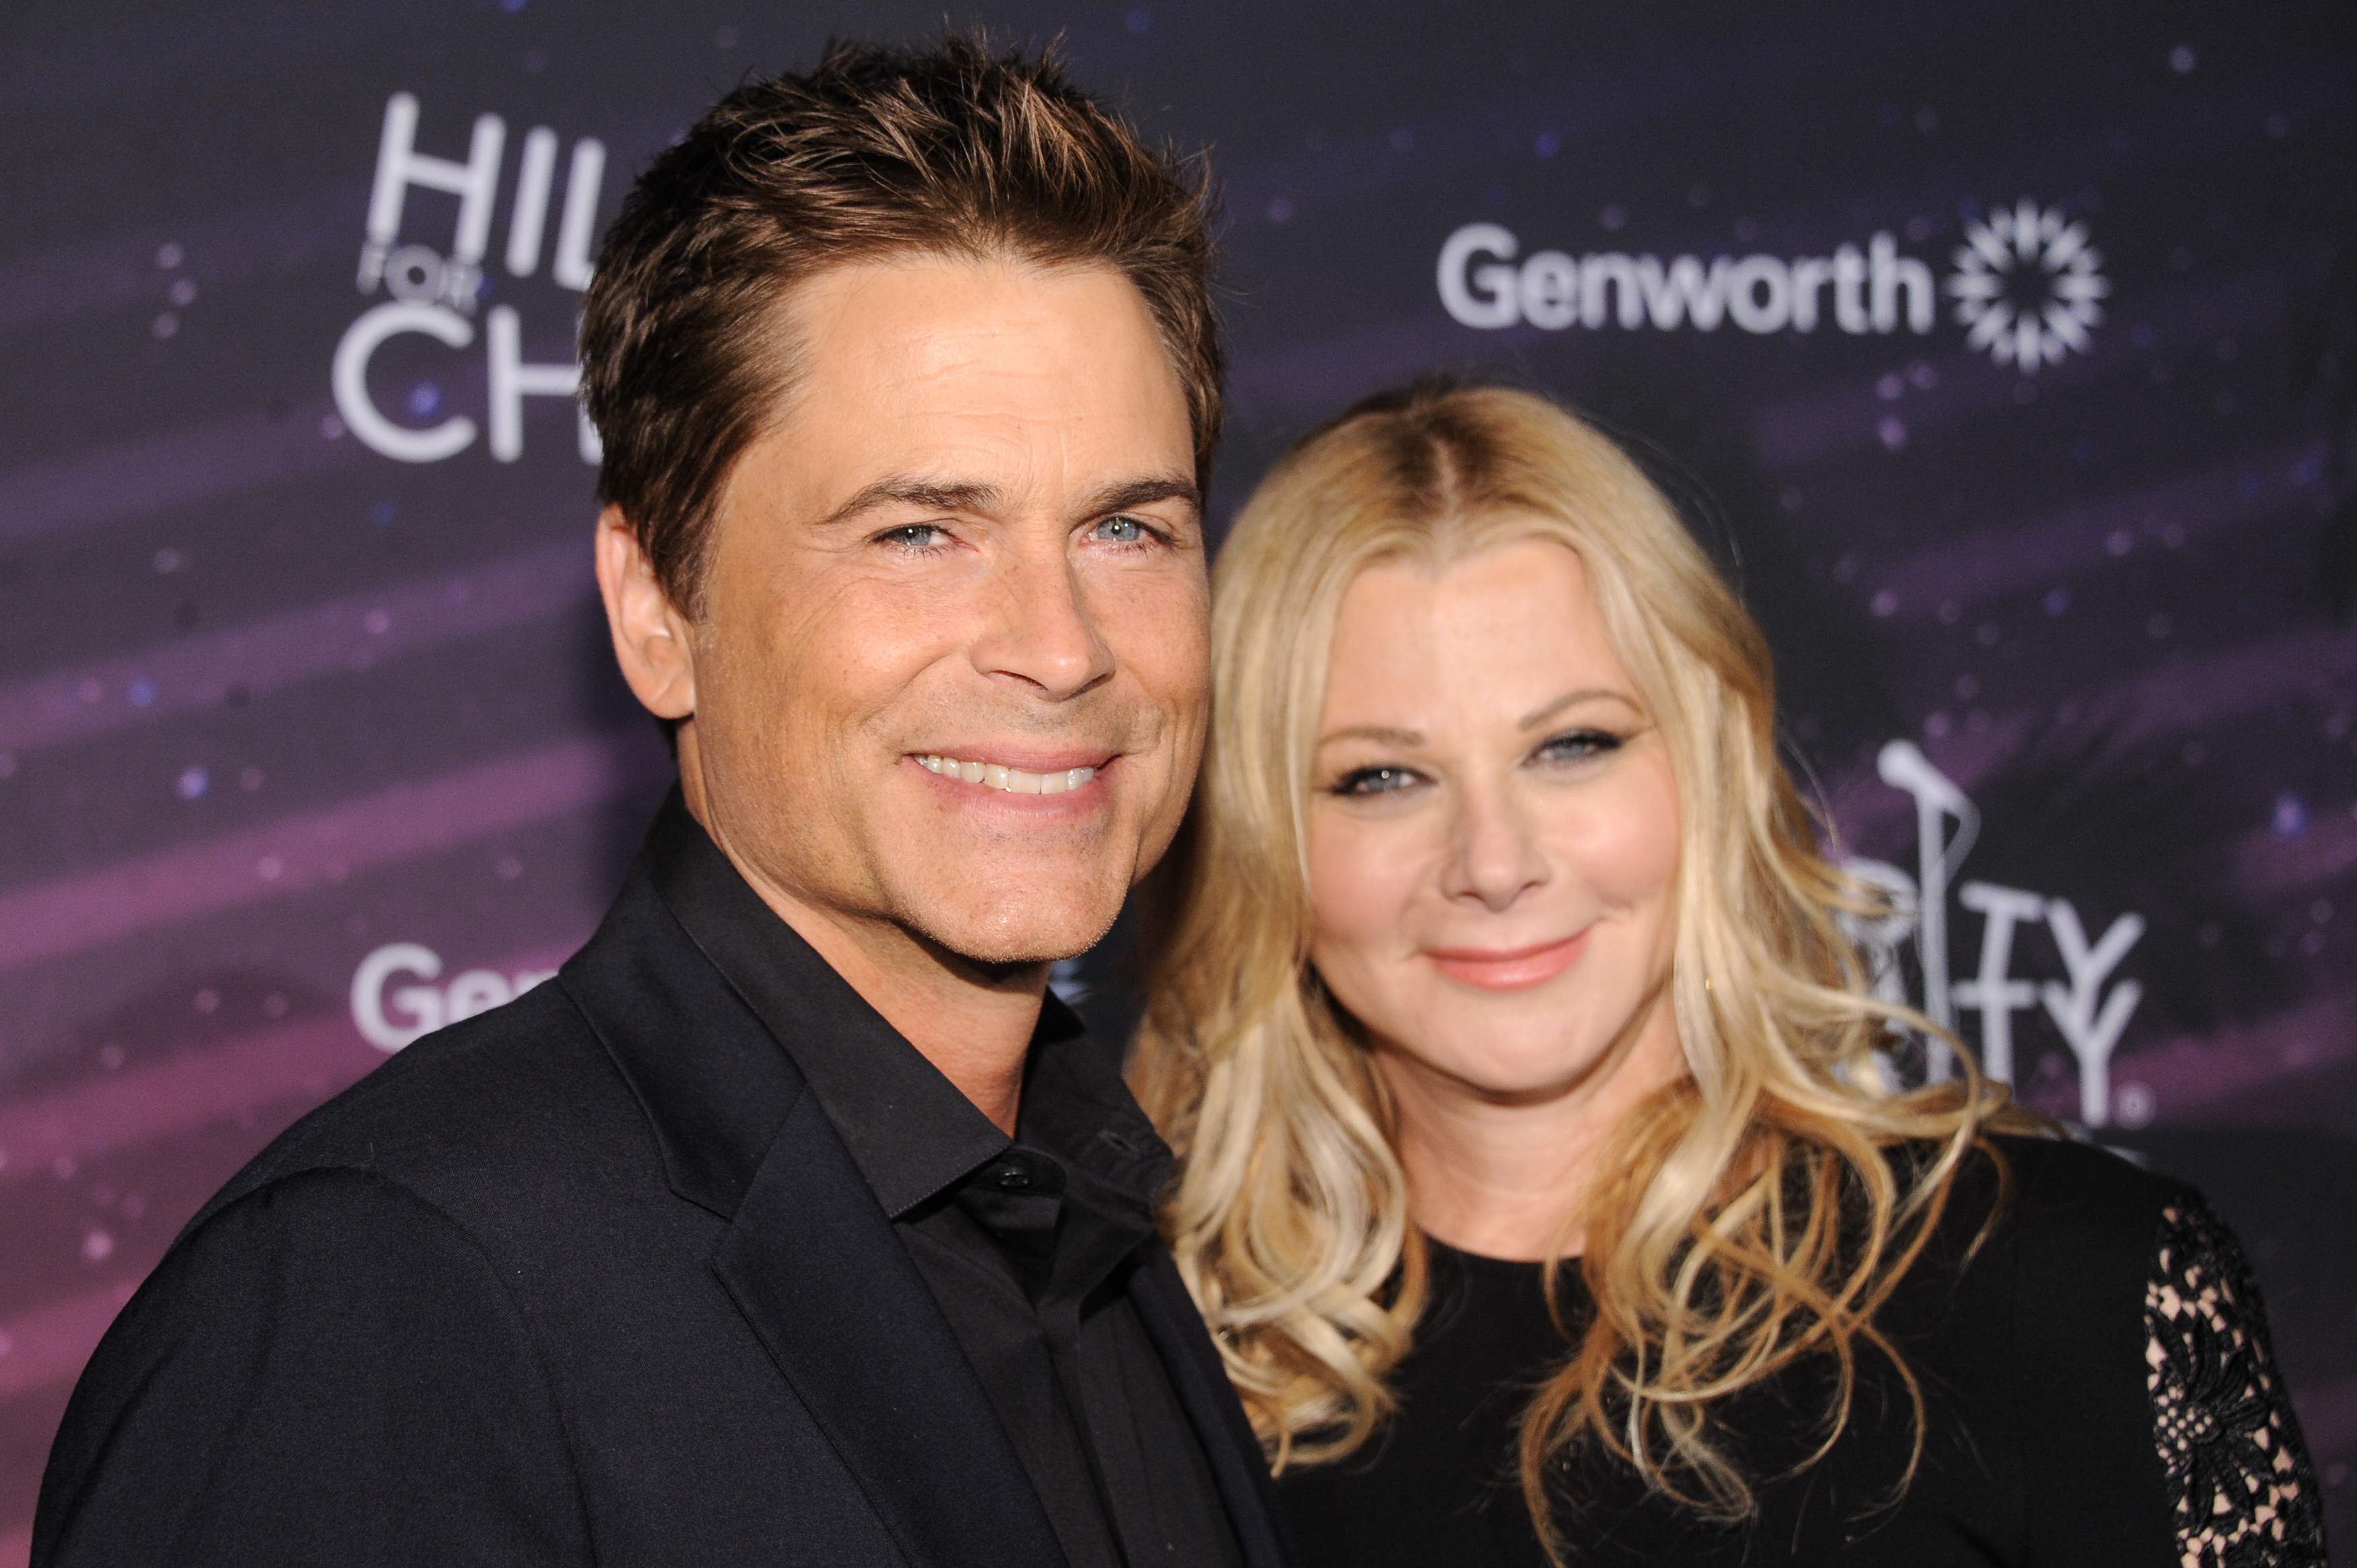 Rob Lowe, left, and Sheryl Berkoff arrive at the Hilarity For Charity 3rd Annual Los Angeles Variety Show on Friday, Oct. 17, 2014, in Los Angeles. (Photo by Richard Shotwell/Invision/AP)